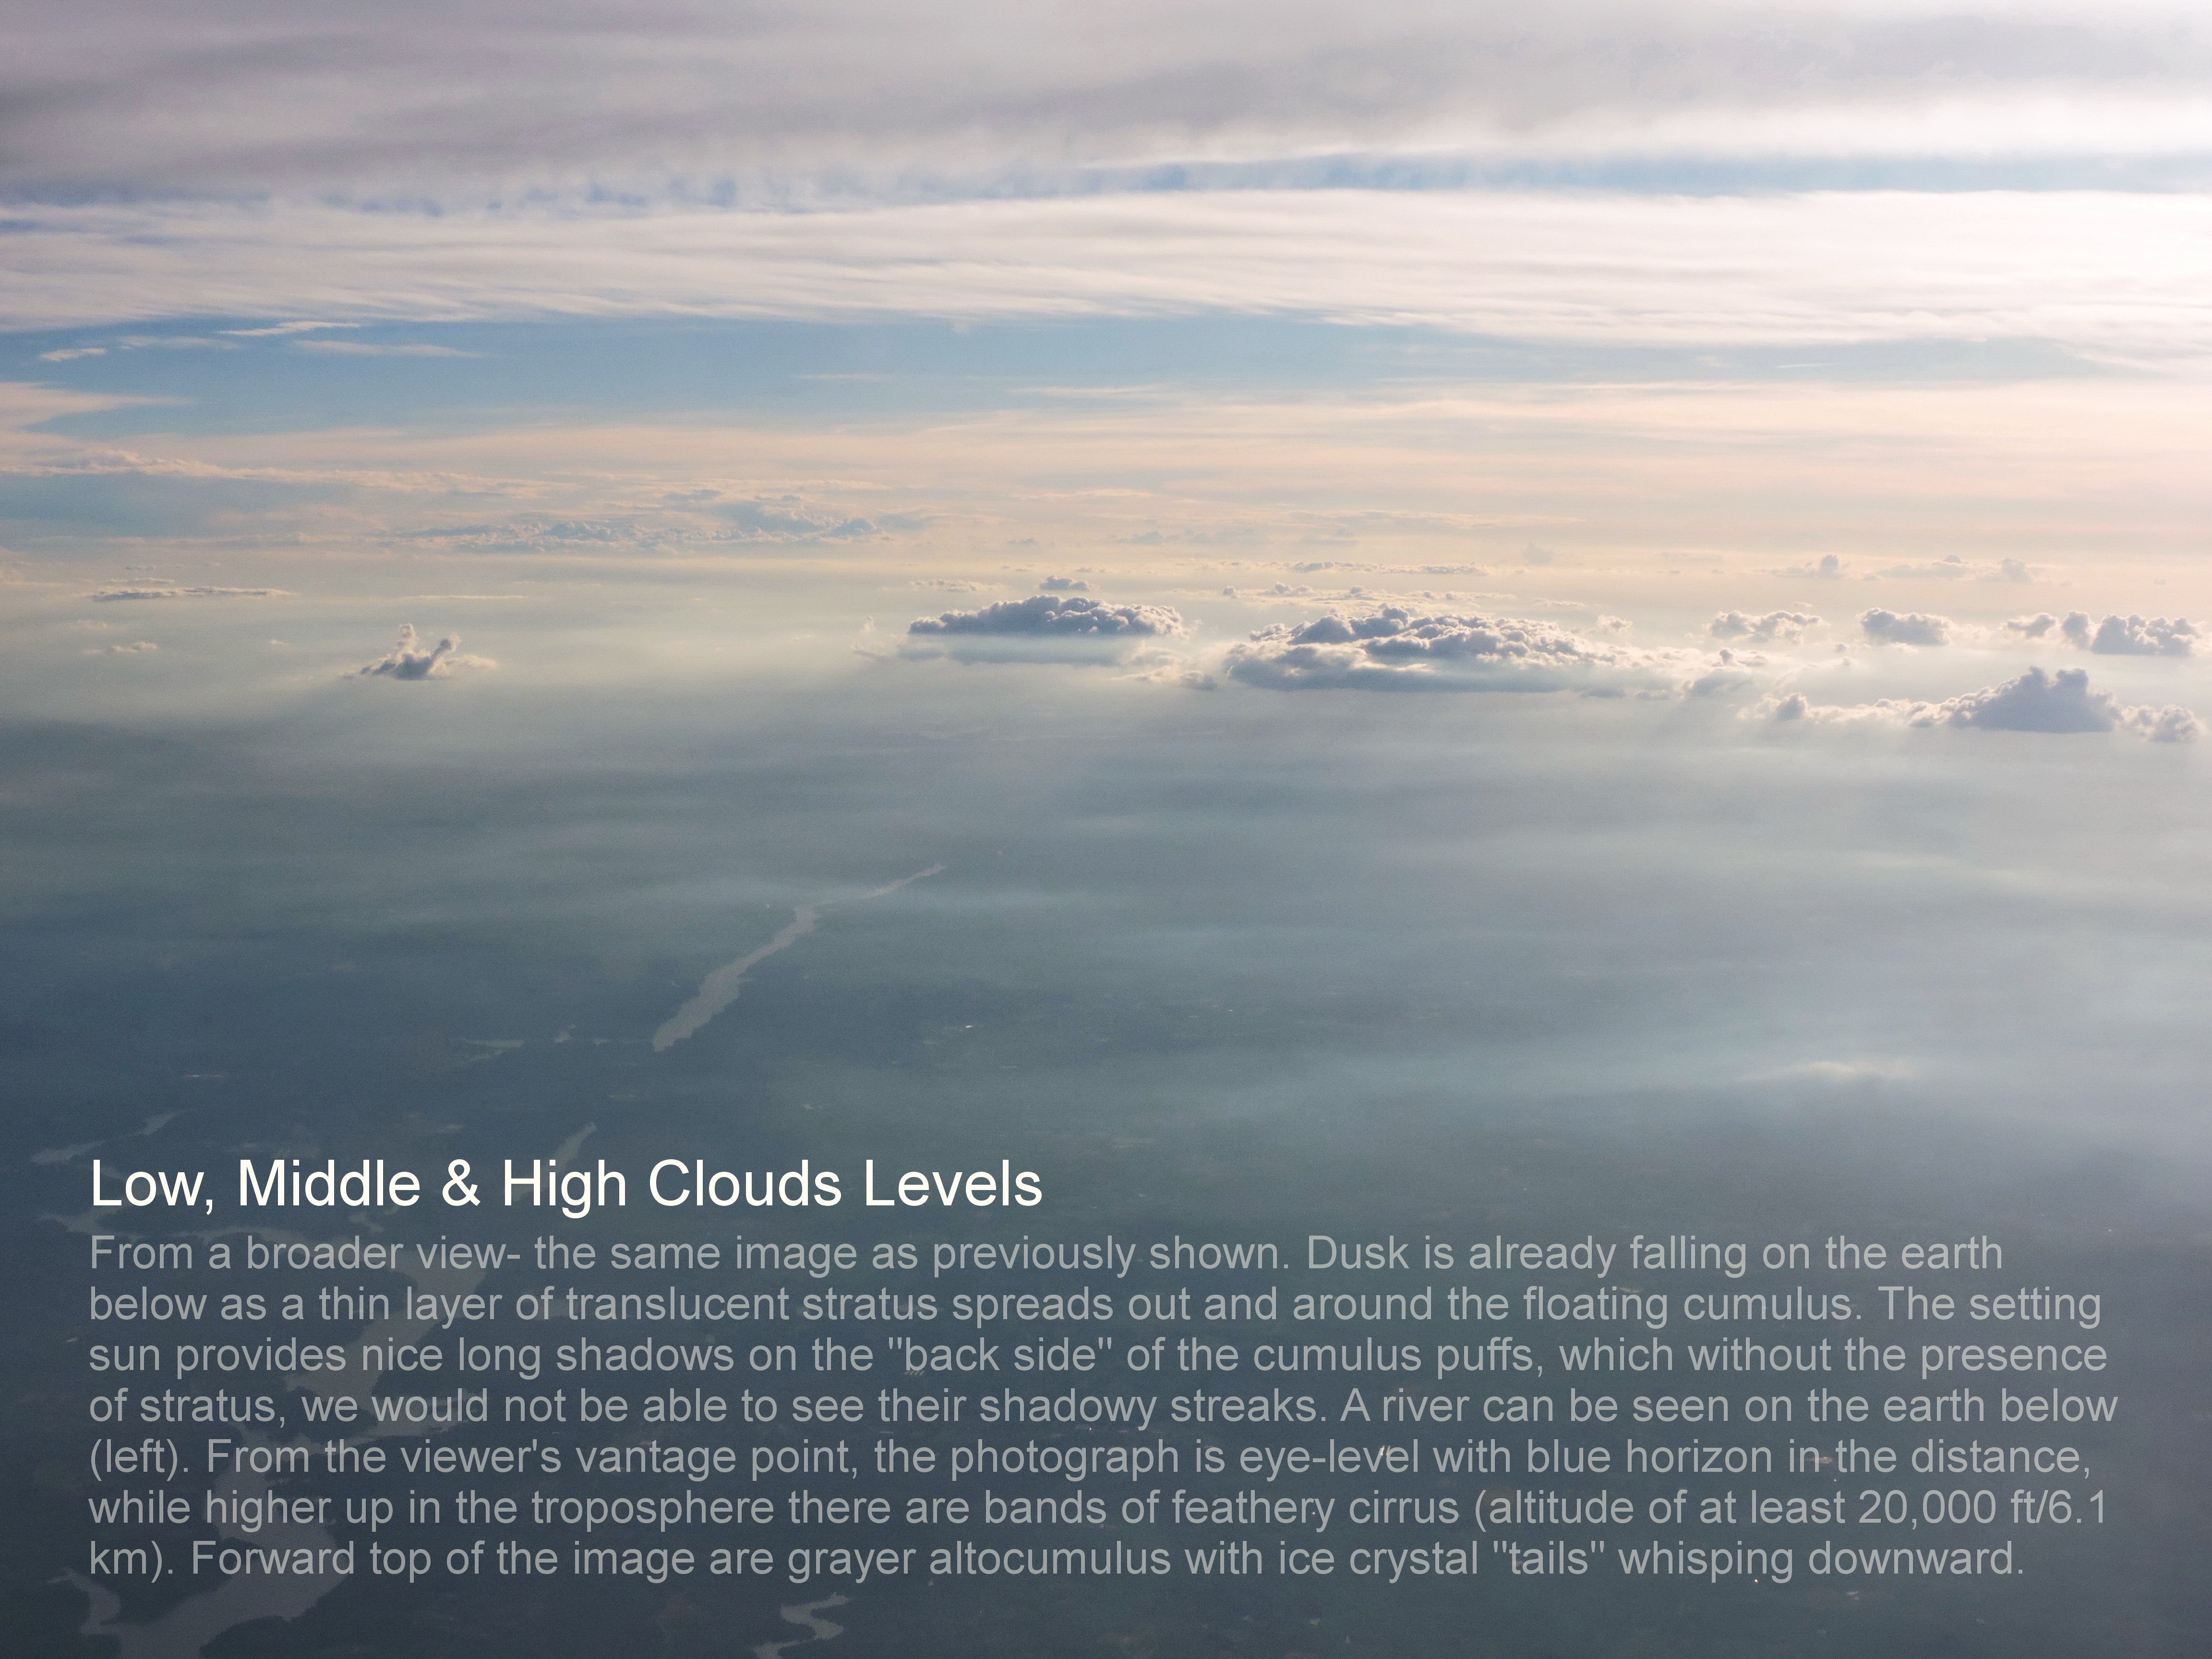 © Low Middle & High Clouds levels. Photography World, www.photographyworld.org